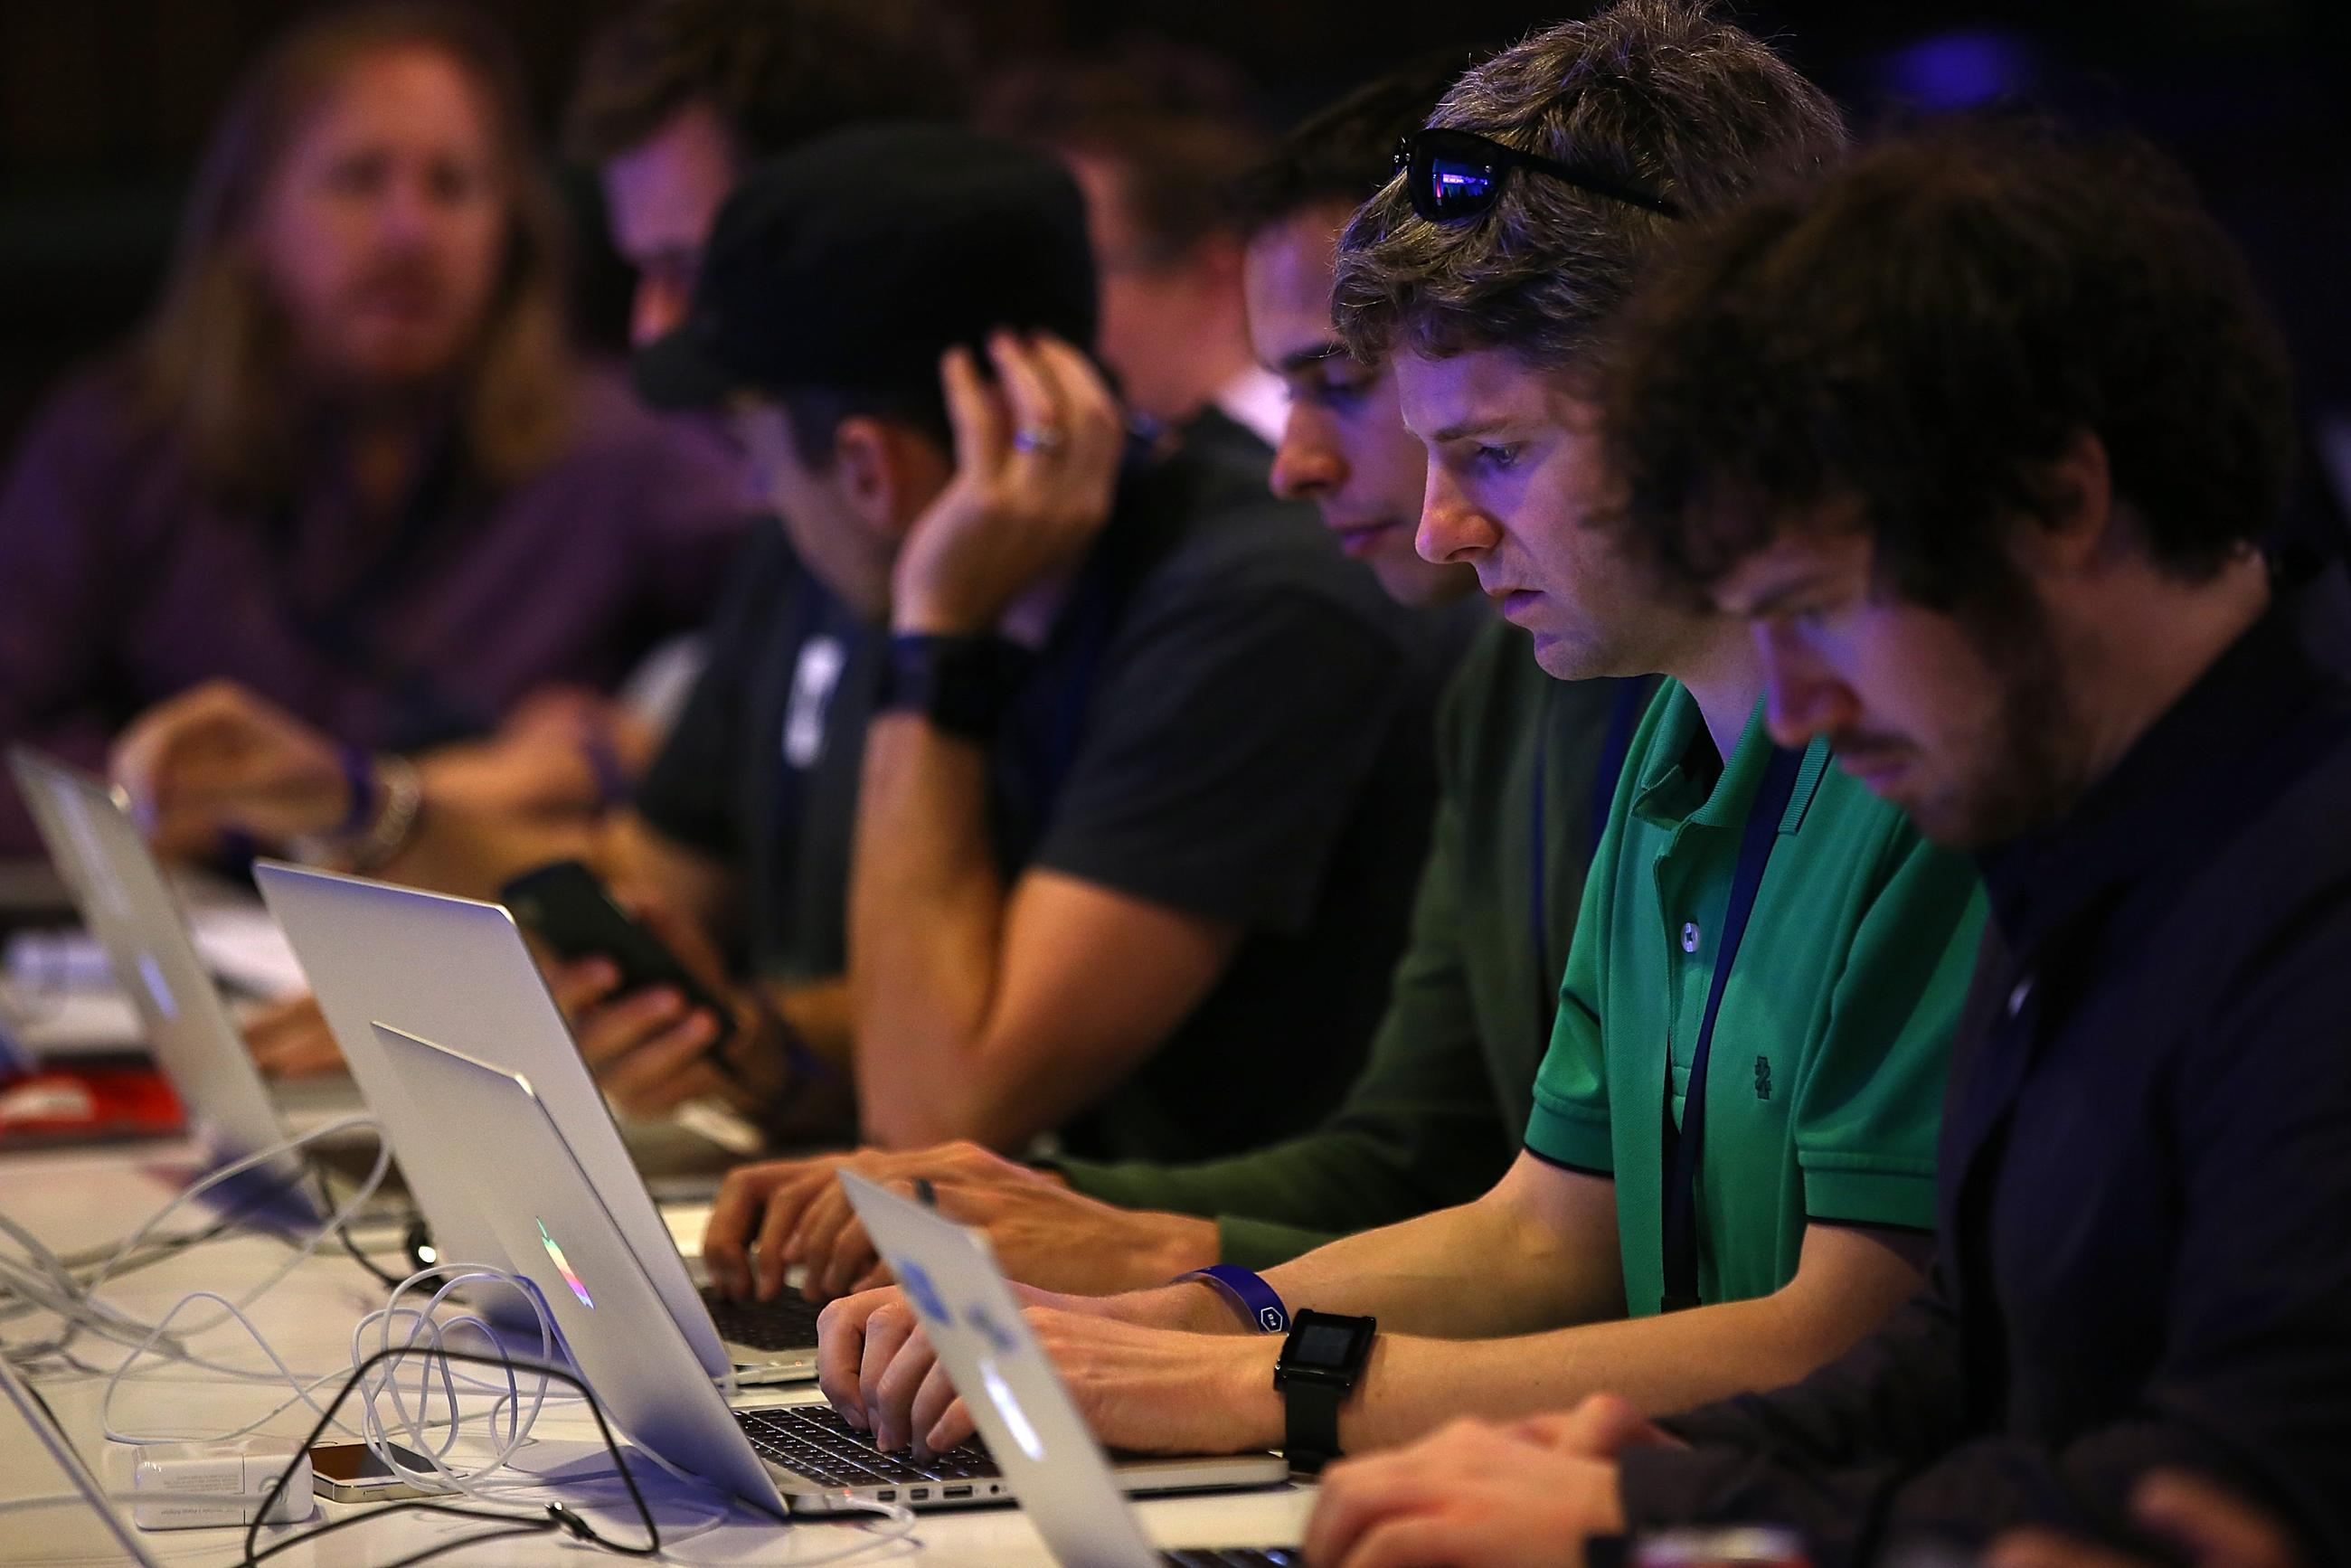 Can Big Data Boost the Paltry Number of Female and Minority Tech Workers?